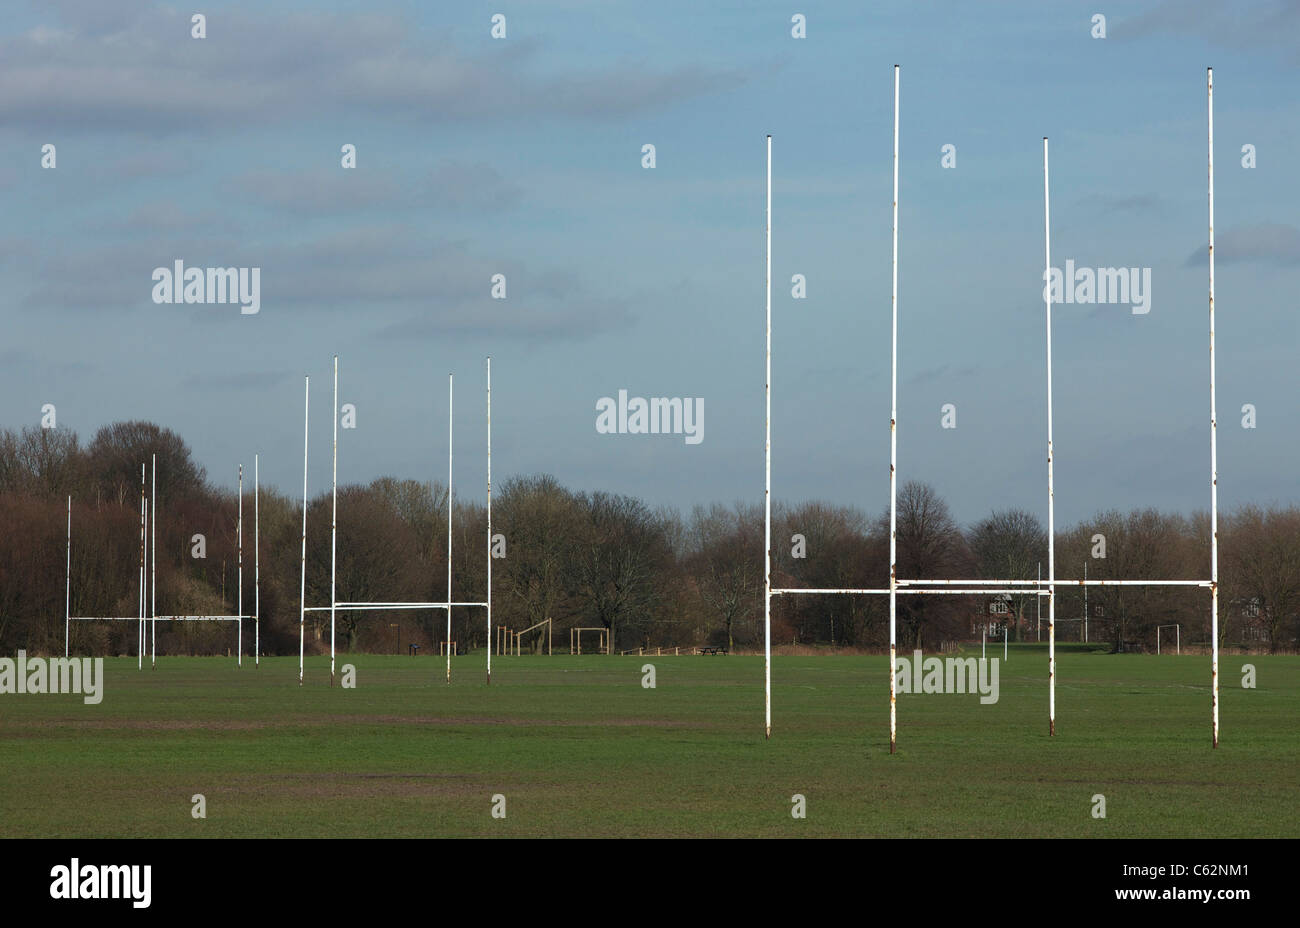 Rugby posts sur emplacements adjacents Photo Stock